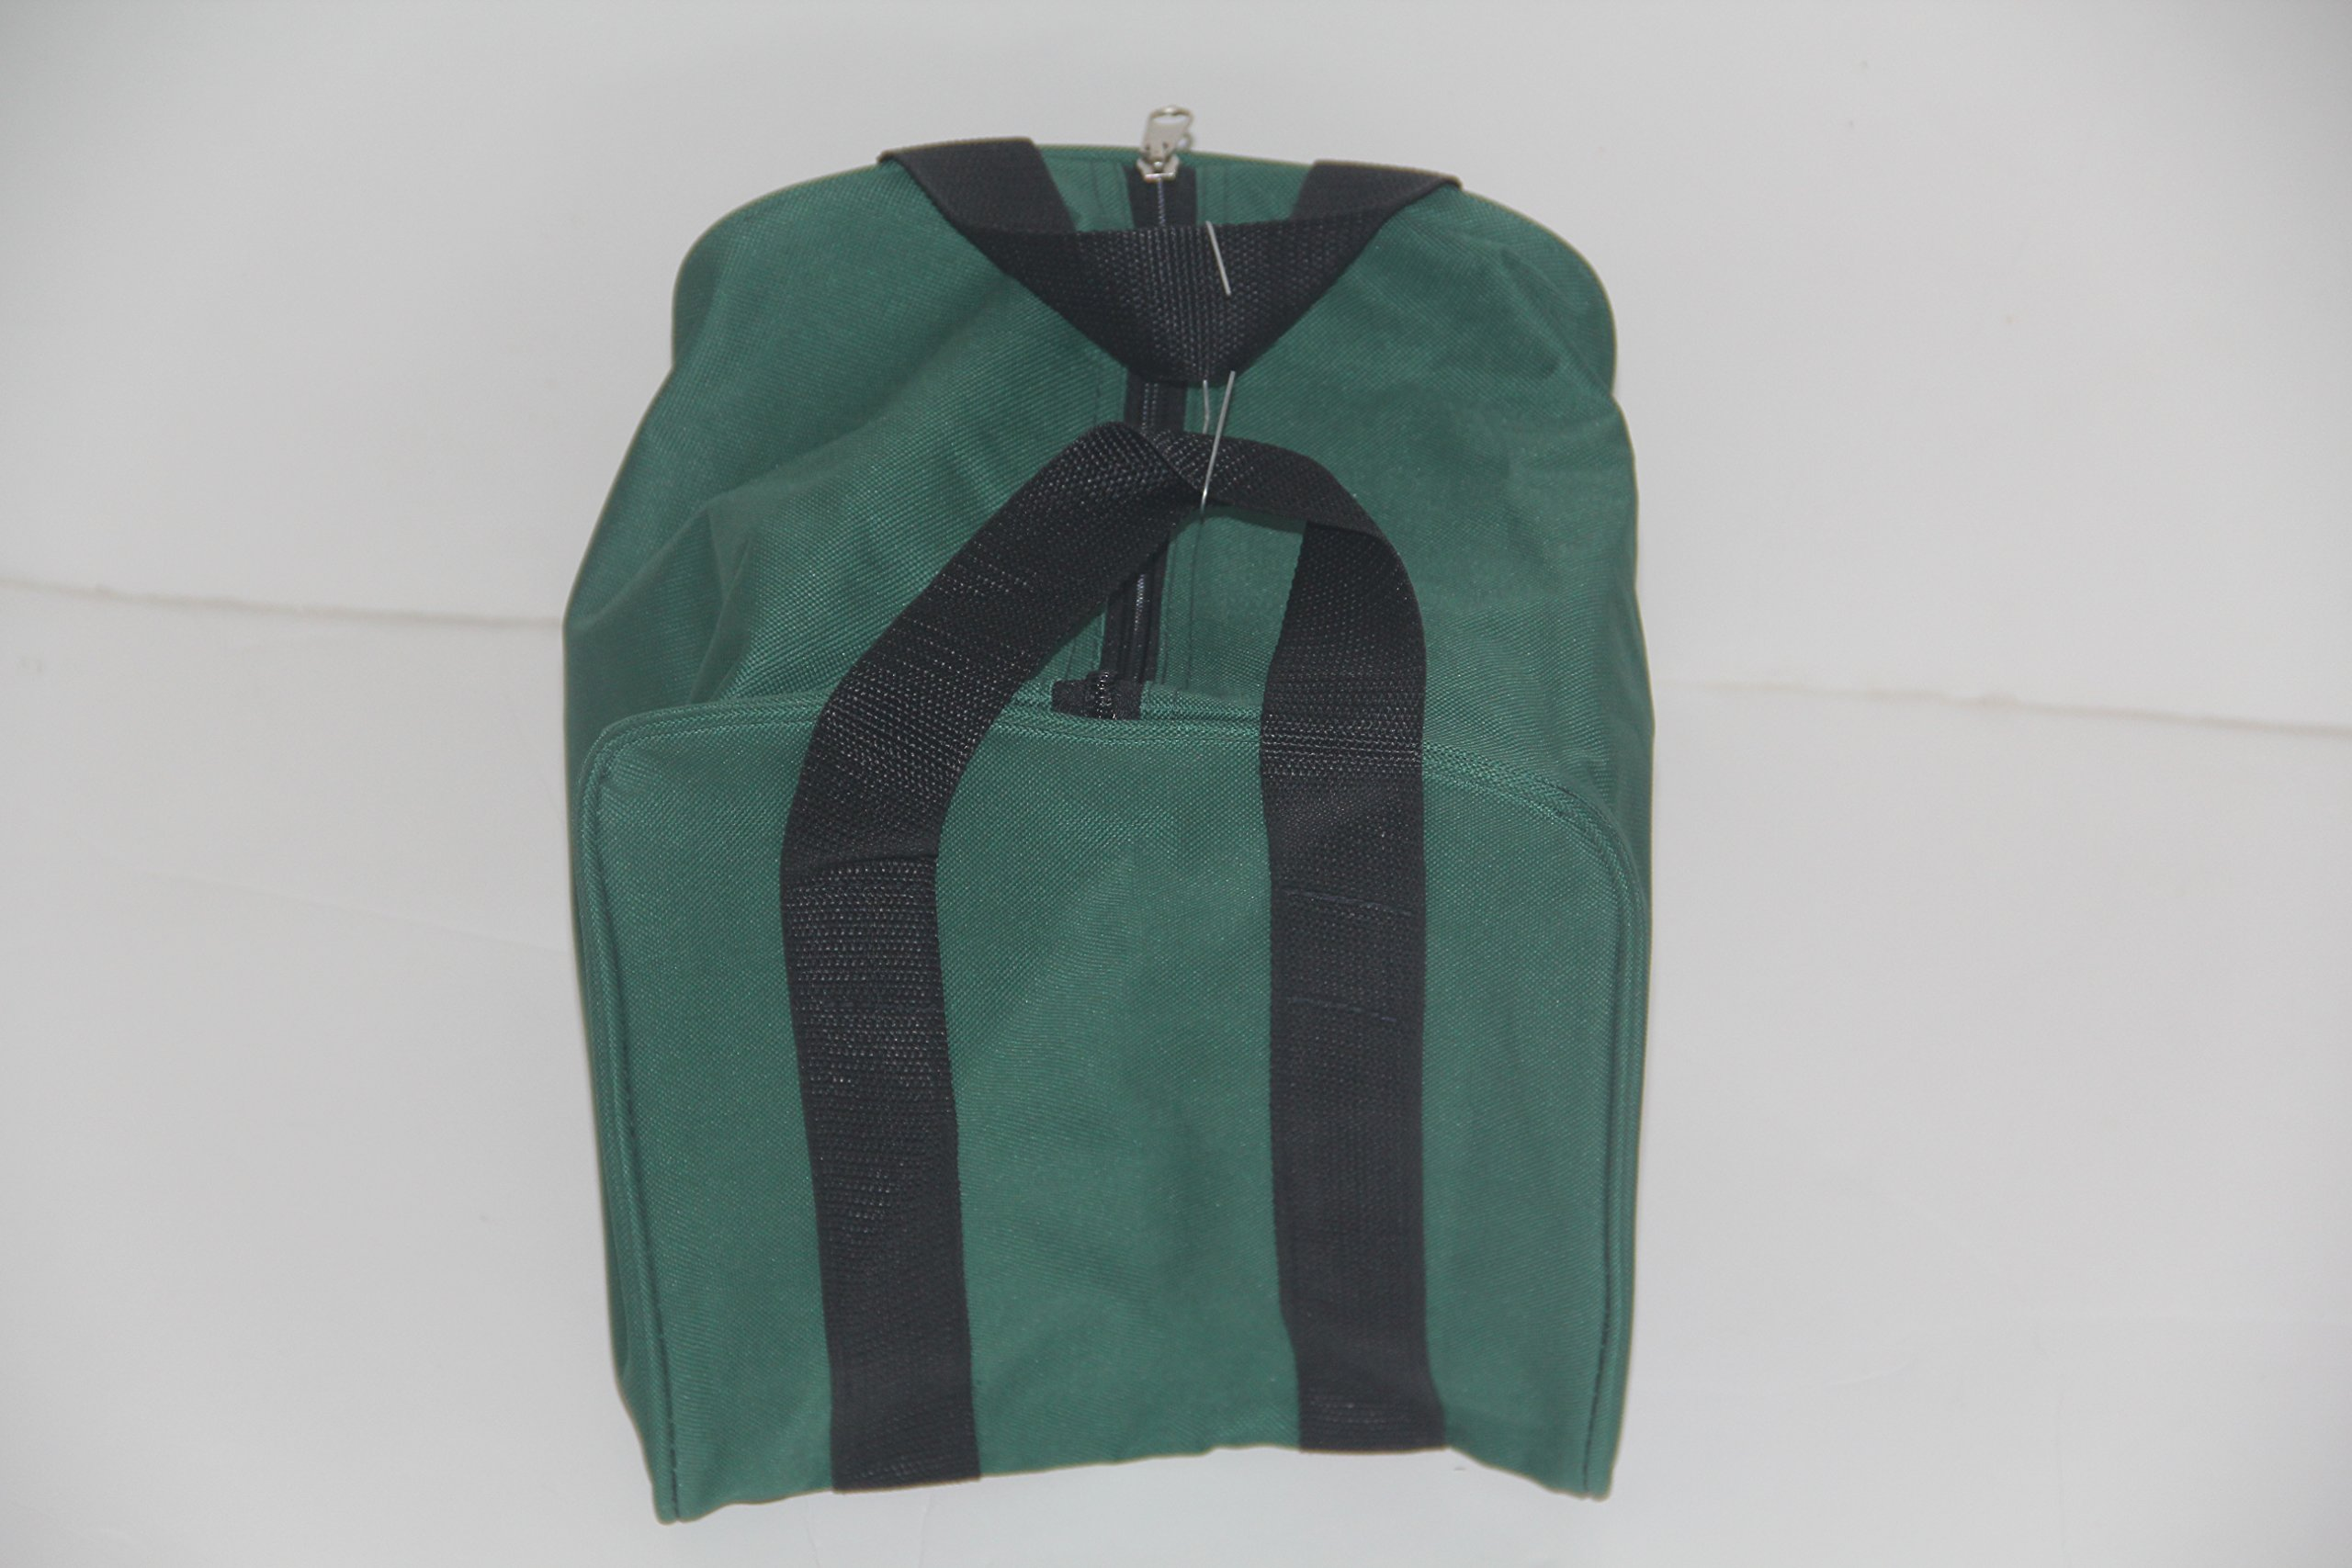 Premium Quality - Extra Heavy Duty Nylon Bocce Bag - Green with Black Handles by Epco